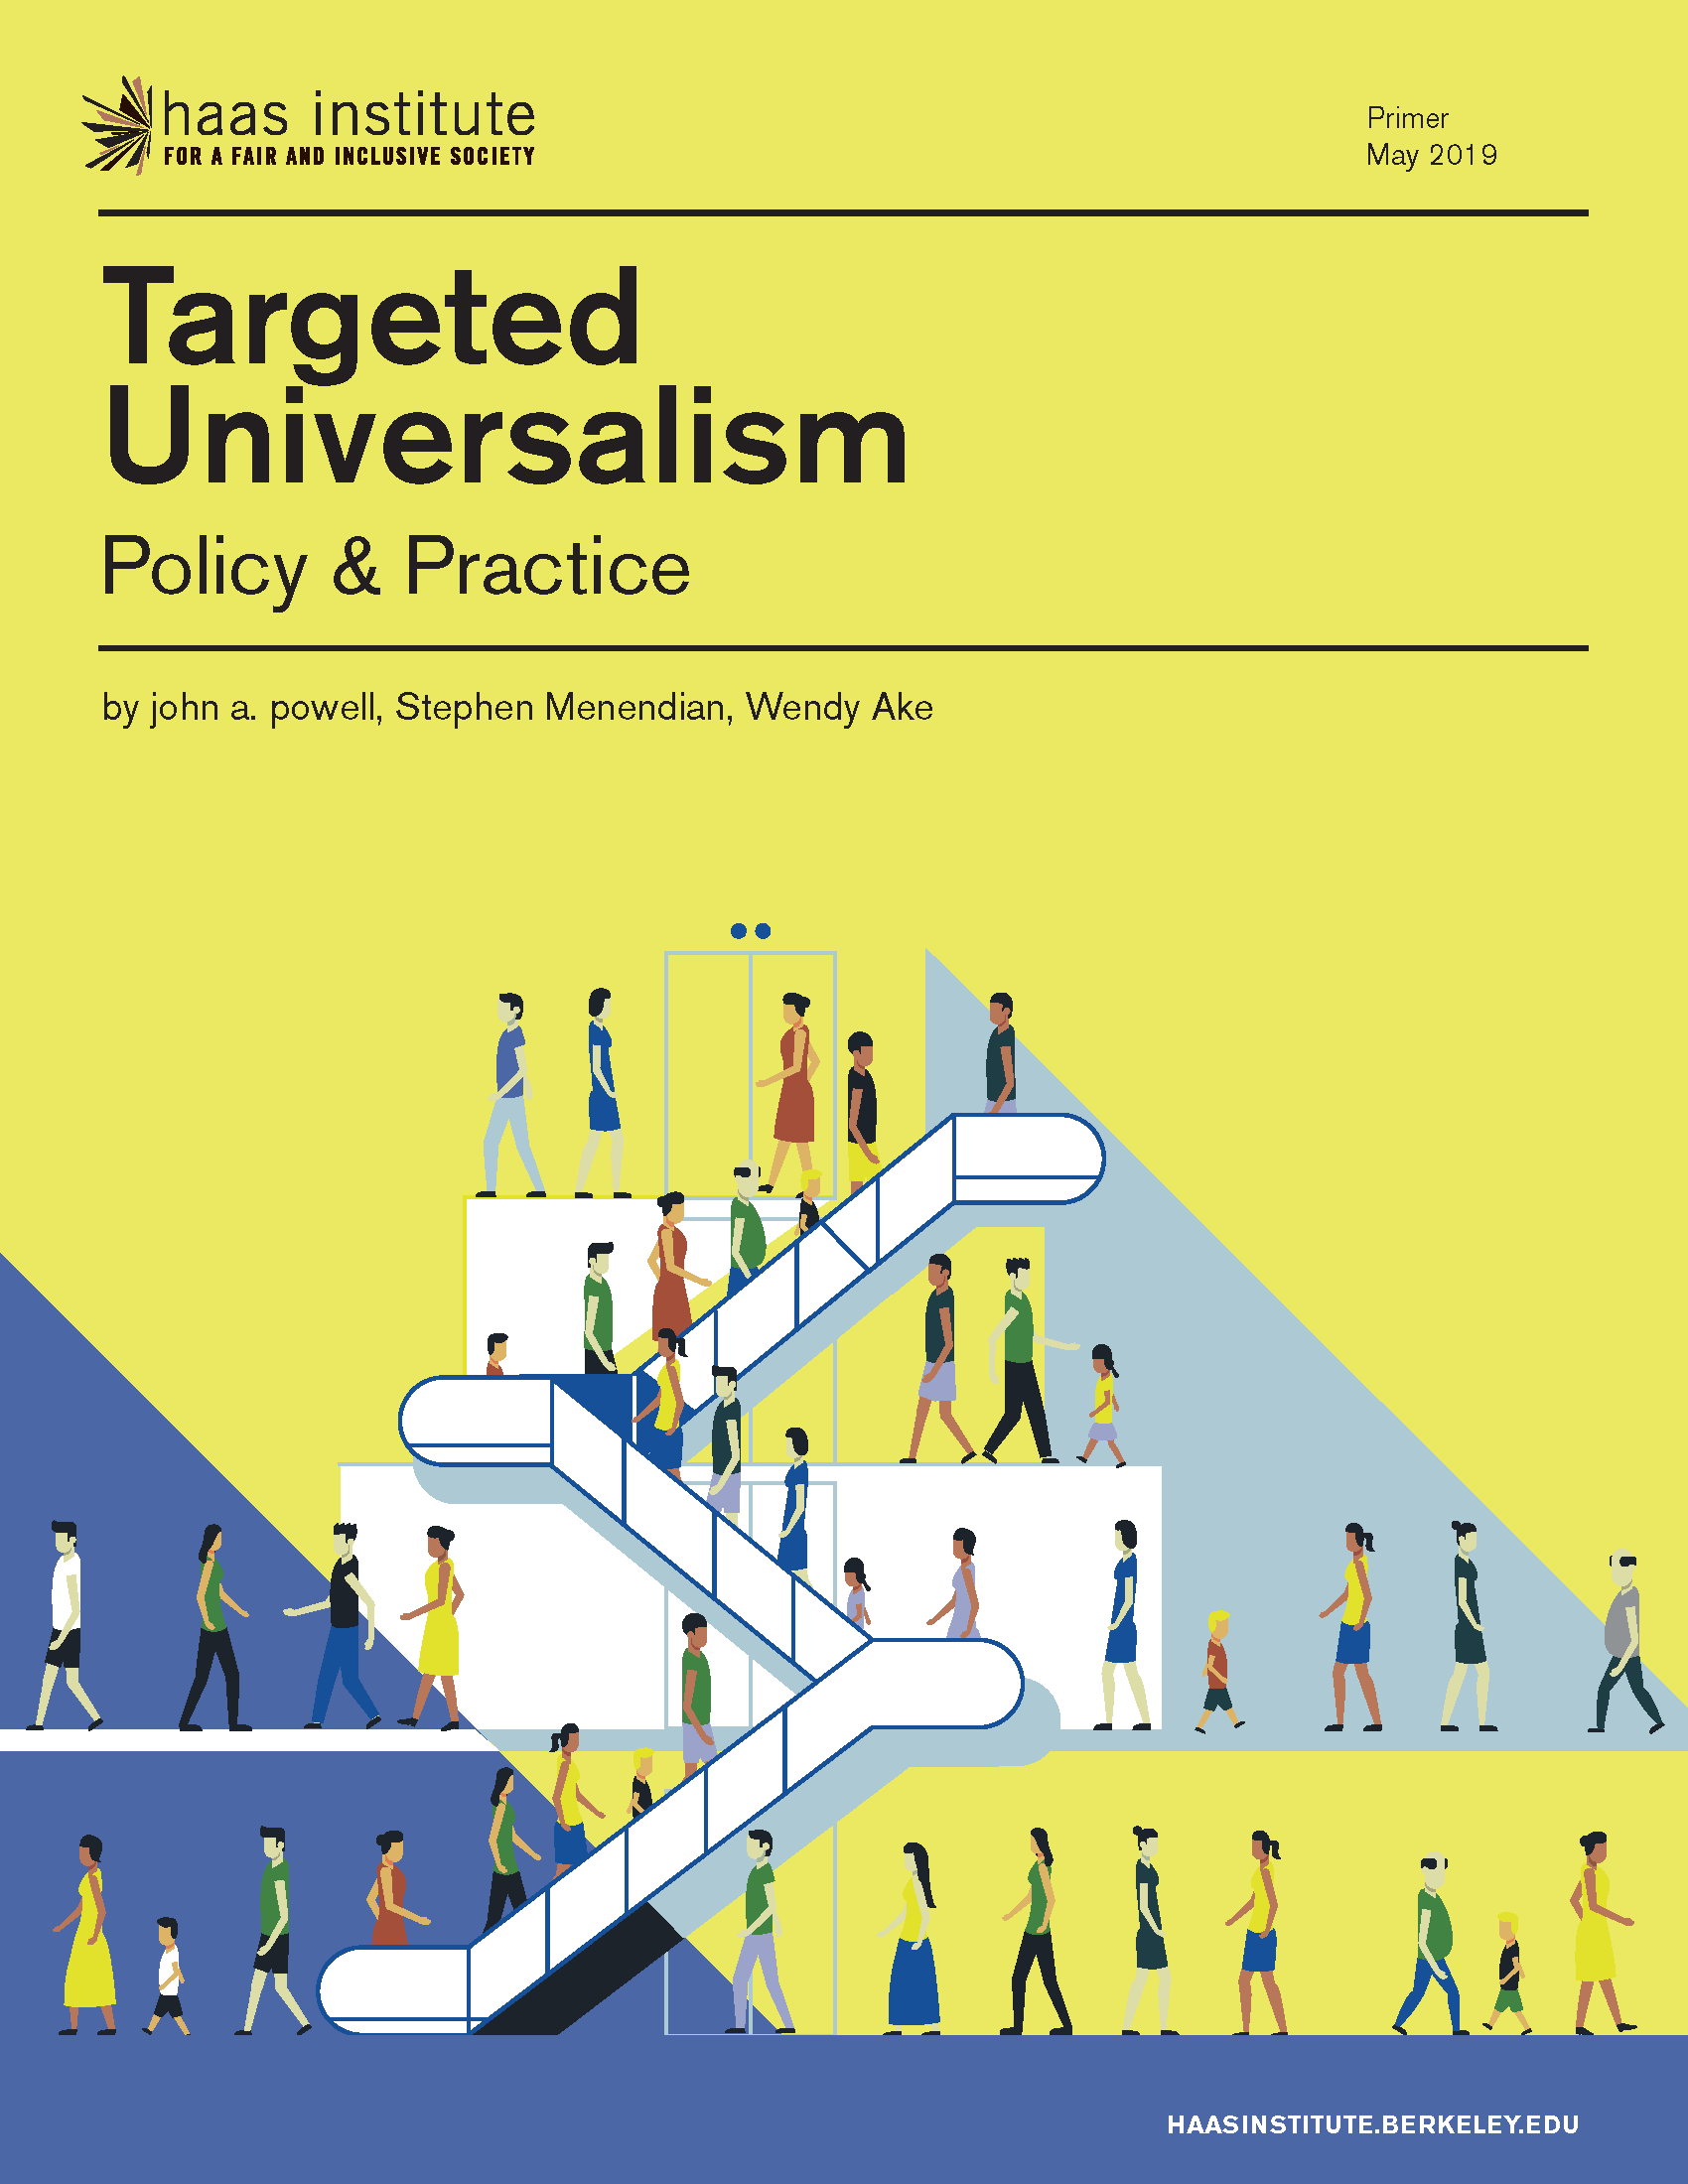 Targeted Universalism: Policy & Practice